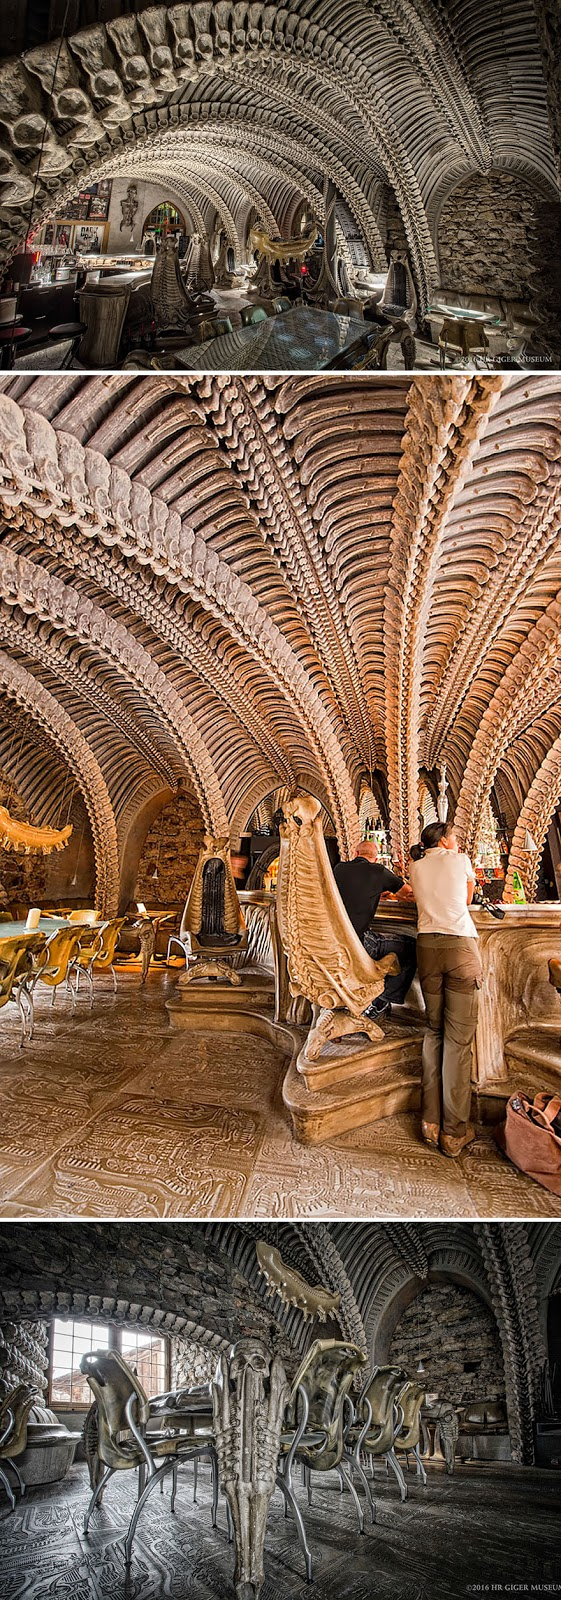 35 Of The World's Most Amazing Restaurants To Eat In Before You Die - Enjoy Your Alien Coffee At This Bizarre Bar, Hr Giger Museum Bar, Gruyères, Switzerland